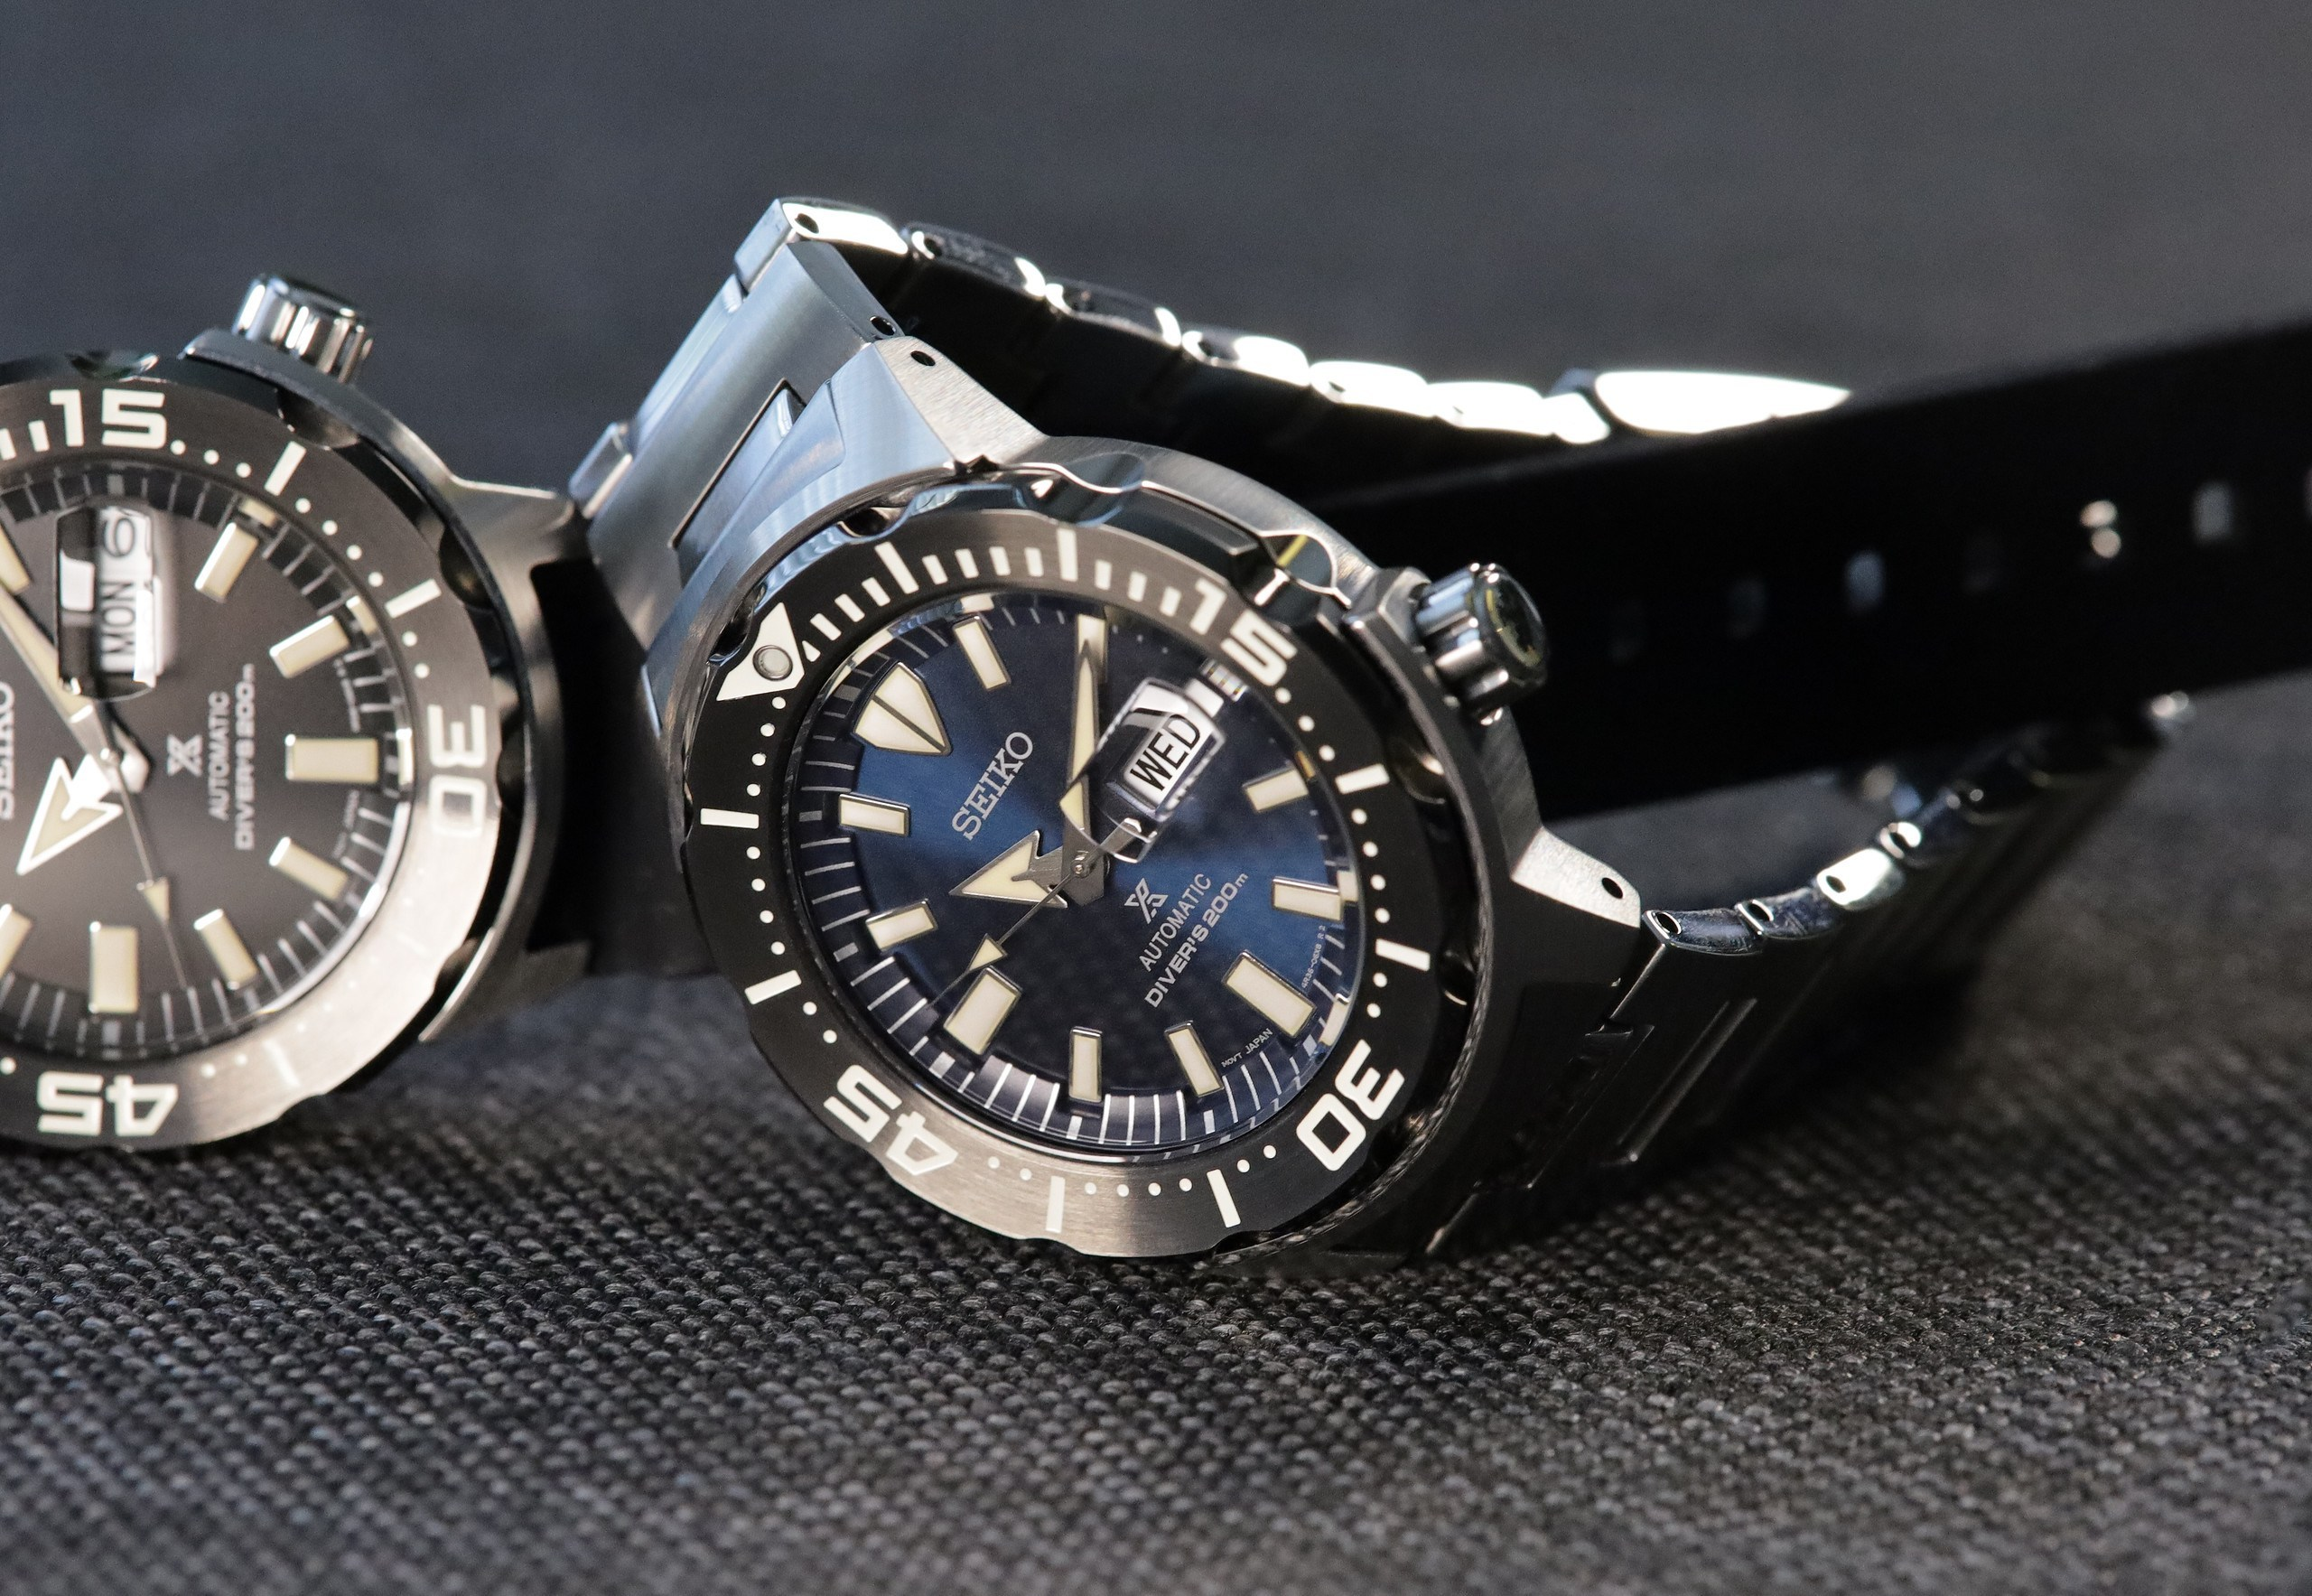 Seiko-Prospex-SRPD25-Monster-Automatic-Diver-next-to-SRPD27.jpg